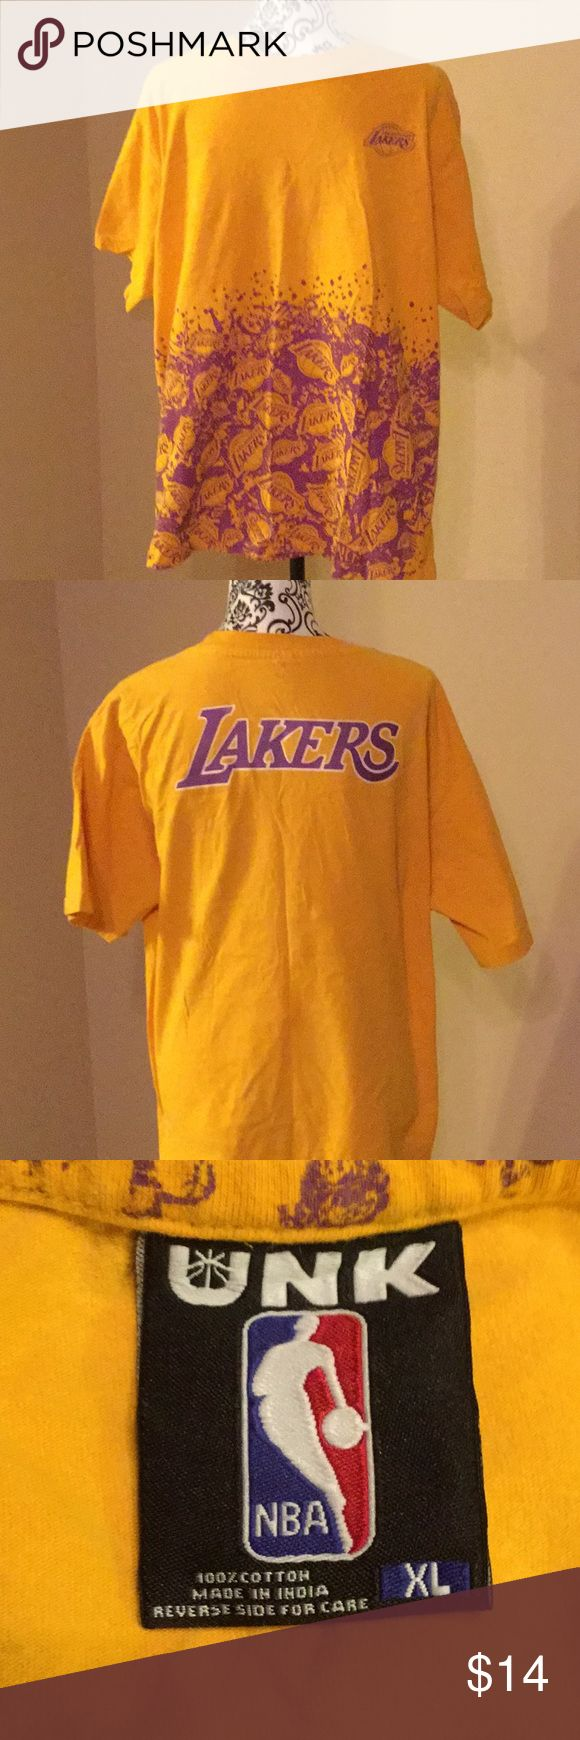 NBA LAKERS Gold t Shirt XL. Brand UNK Gold Lakers t shirt size XL measures 24 inches from armpit to armpit and 30 inches long UNK Shirts Tees - Short Sleeve